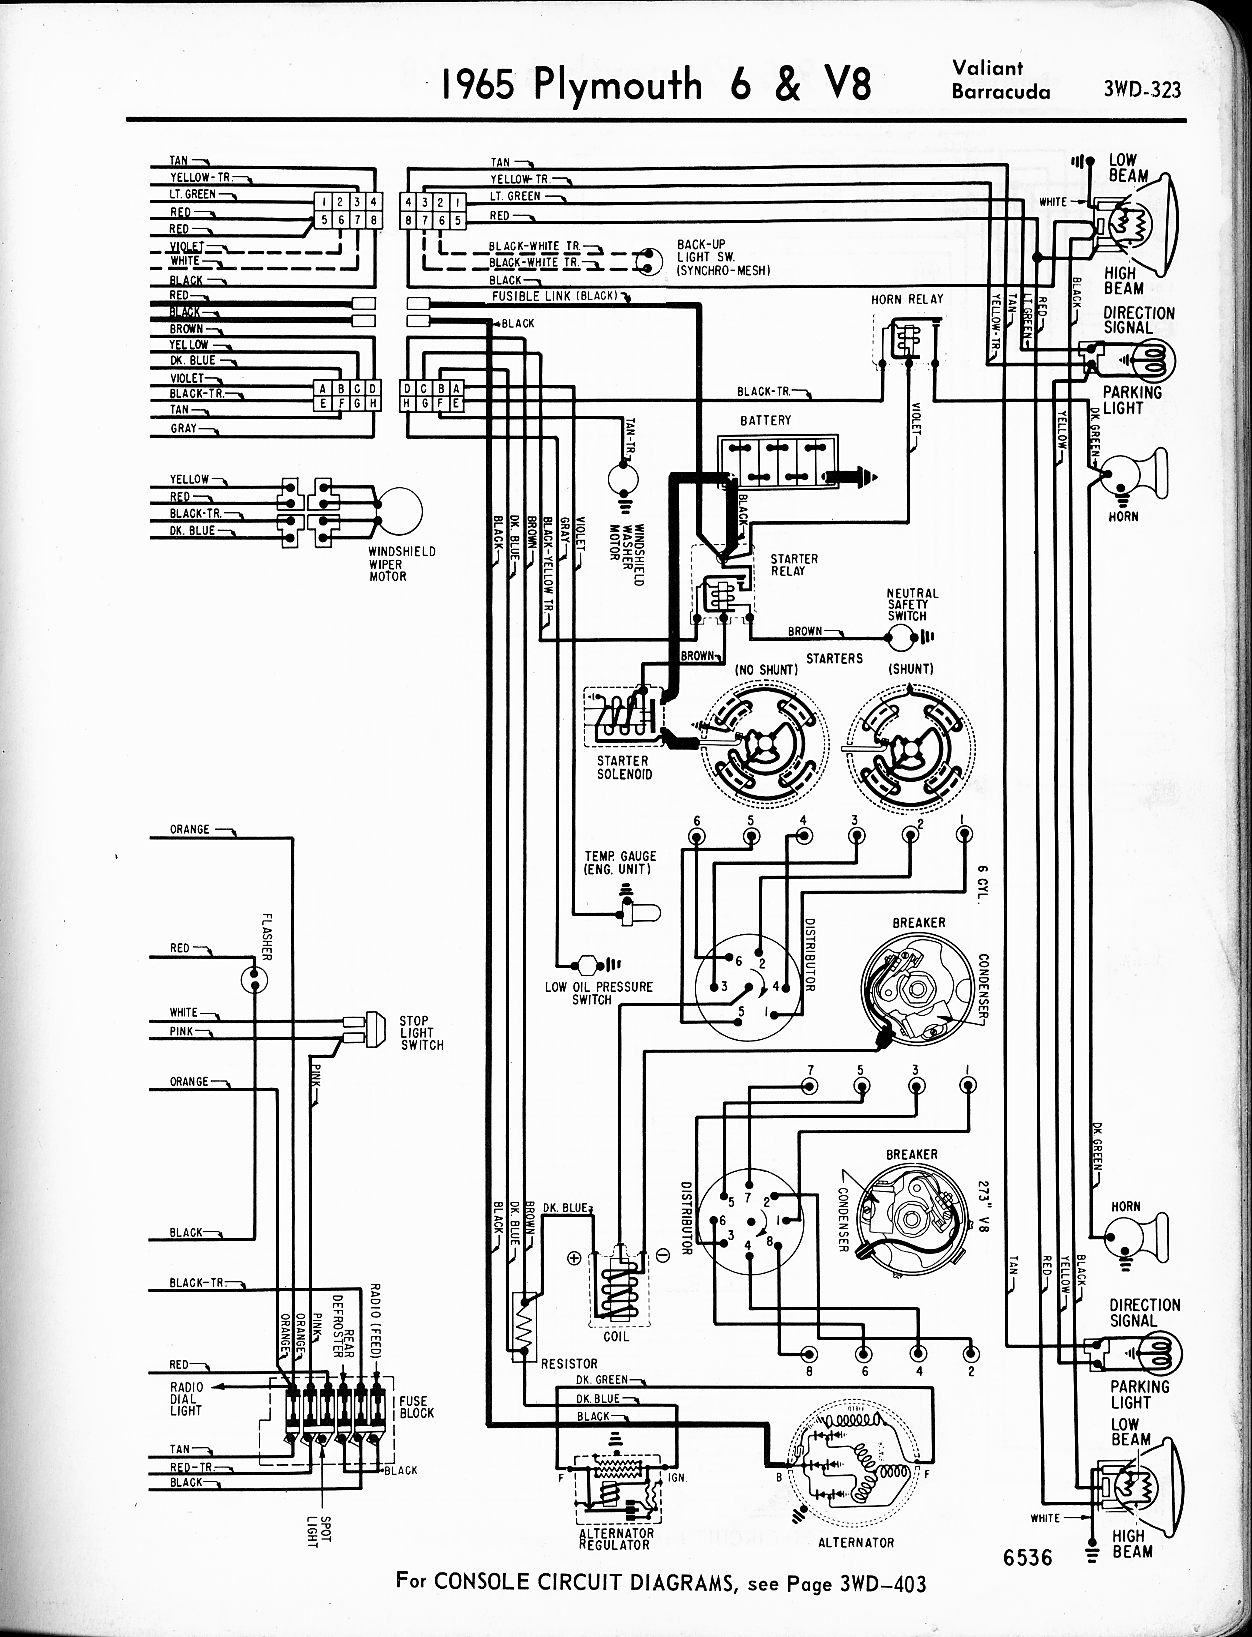 1969 barracuda wiring diagram electrical wiring diagrams rh cytrus co 1968 barracuda wiring diagram Distributor Wiring Diagram